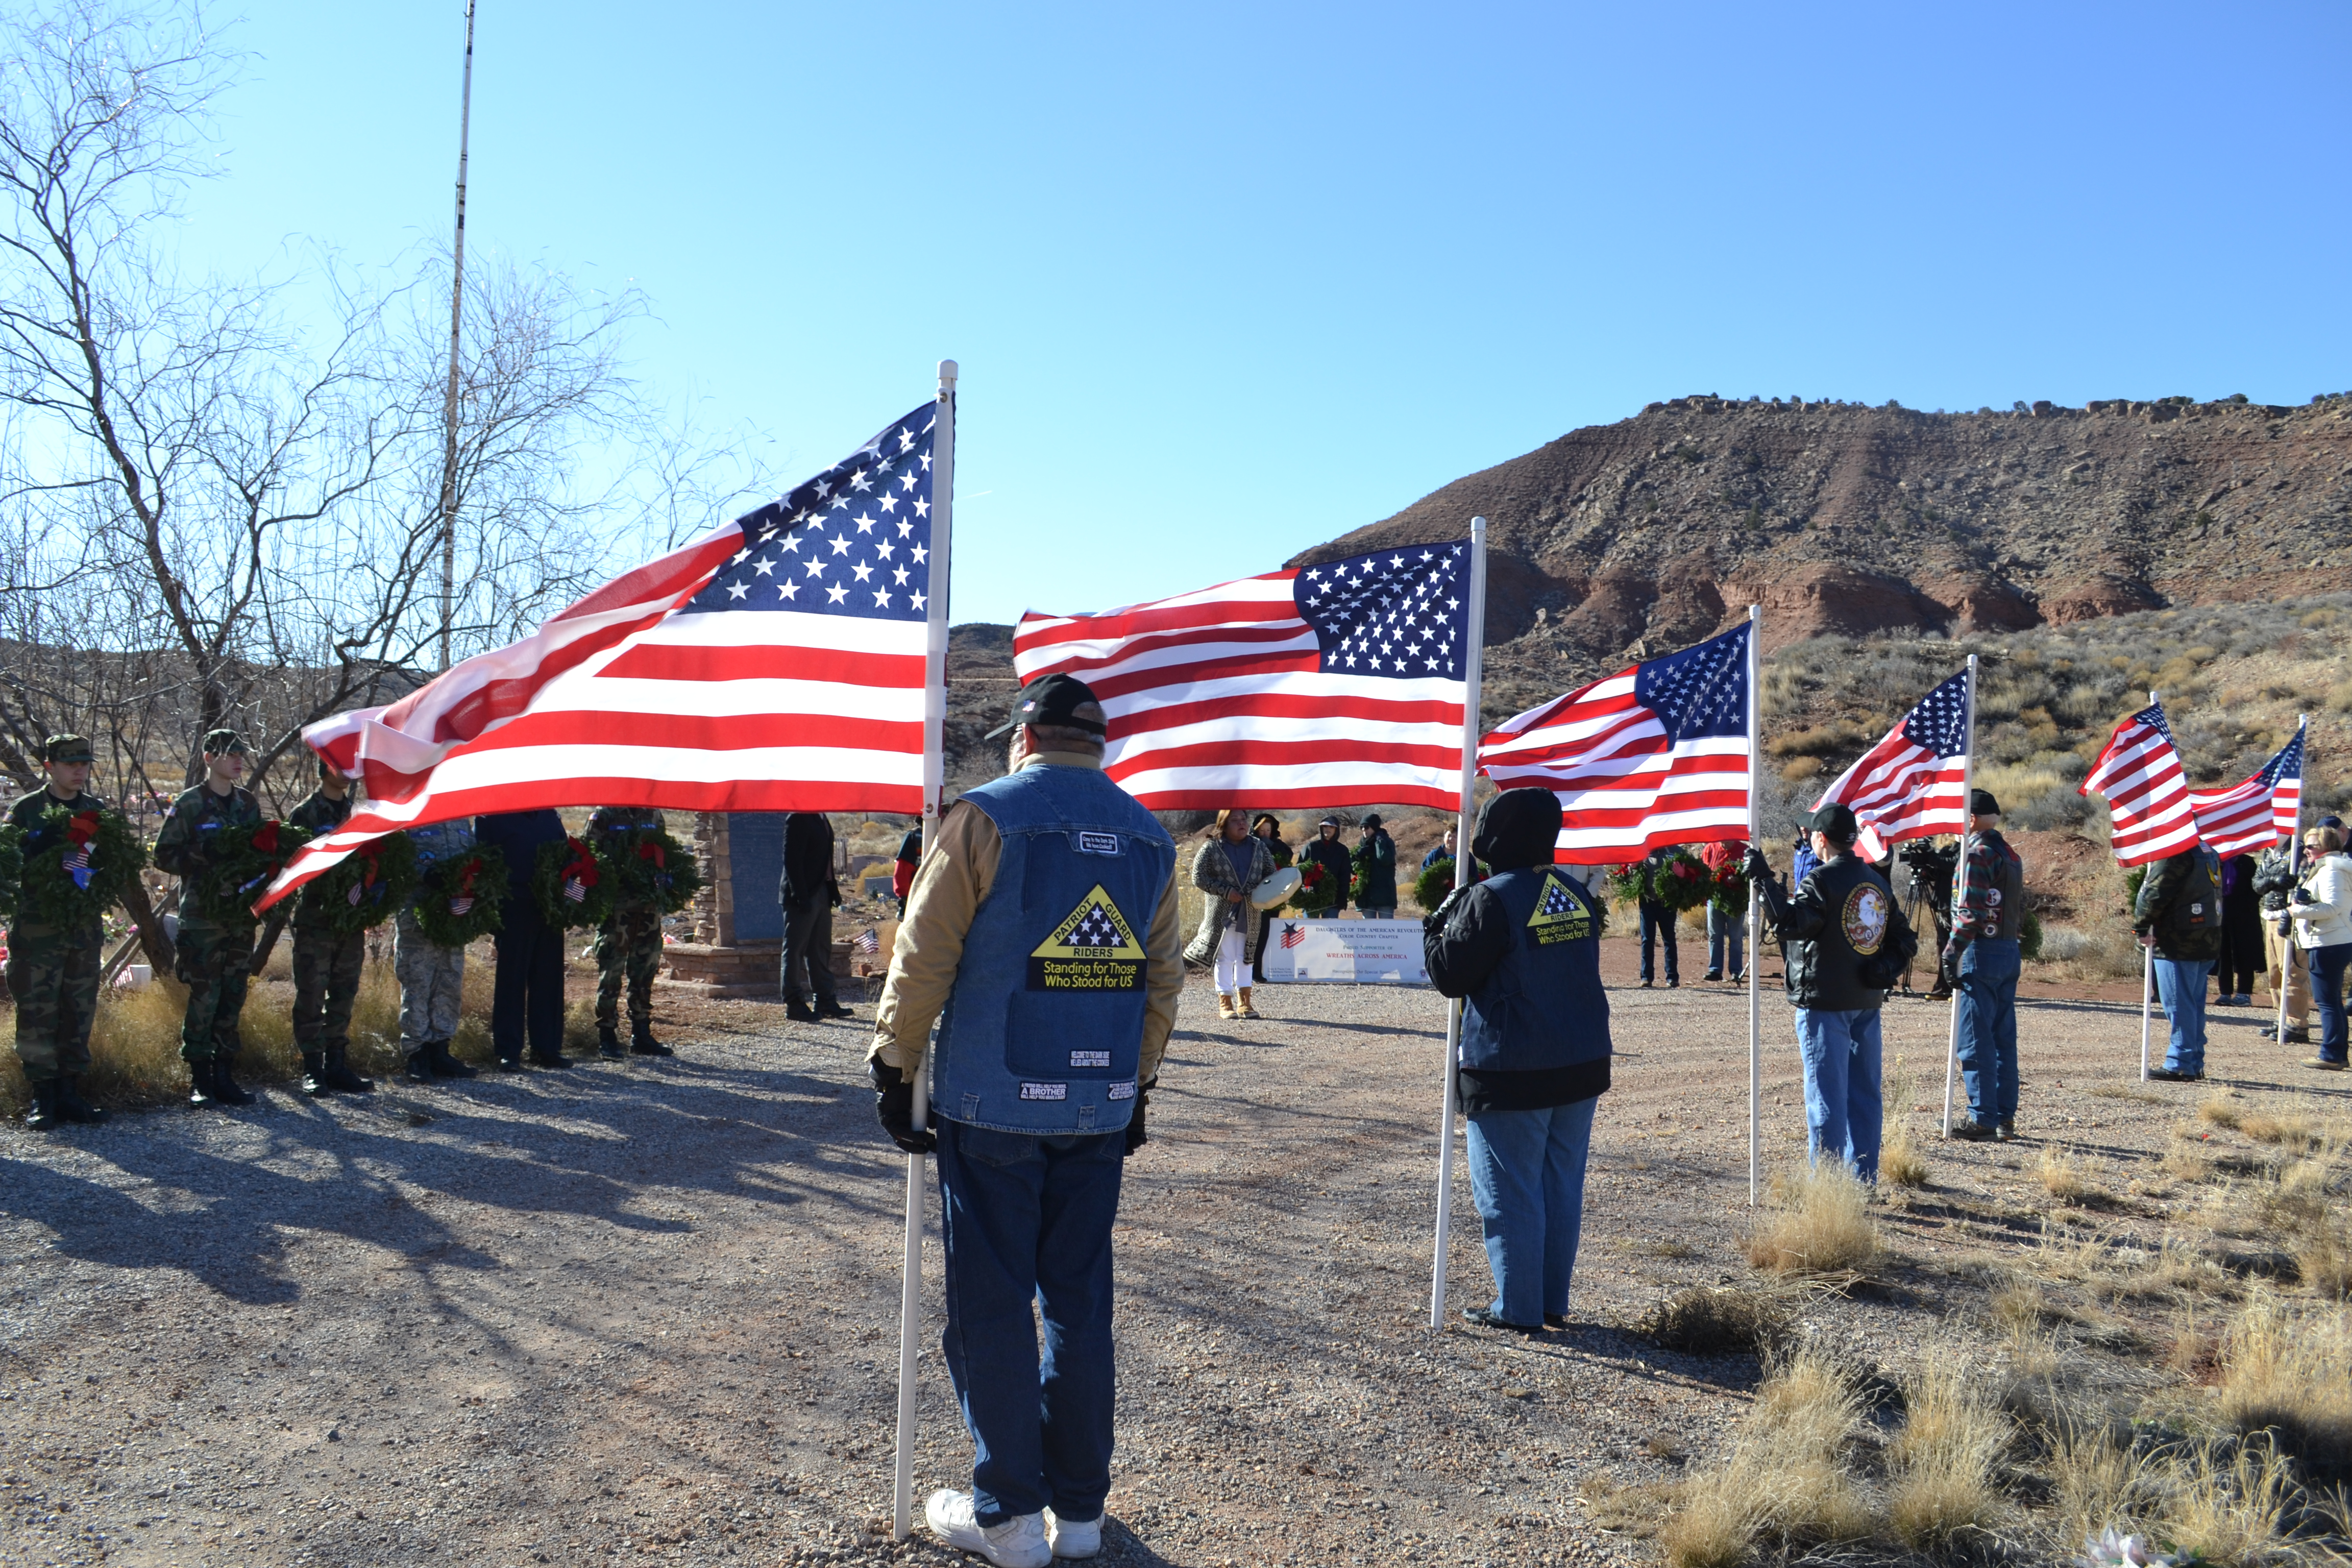 Patriot Guard Riders, St. George Composite Squadron of the Civil Air Patrol and members of the Shivwits Band of Paiutes participate in a Wreaths Across America ceremony, Shivwits, Utah, Dec. 17, 2016 | Photo by Joseph Witham, St. George News